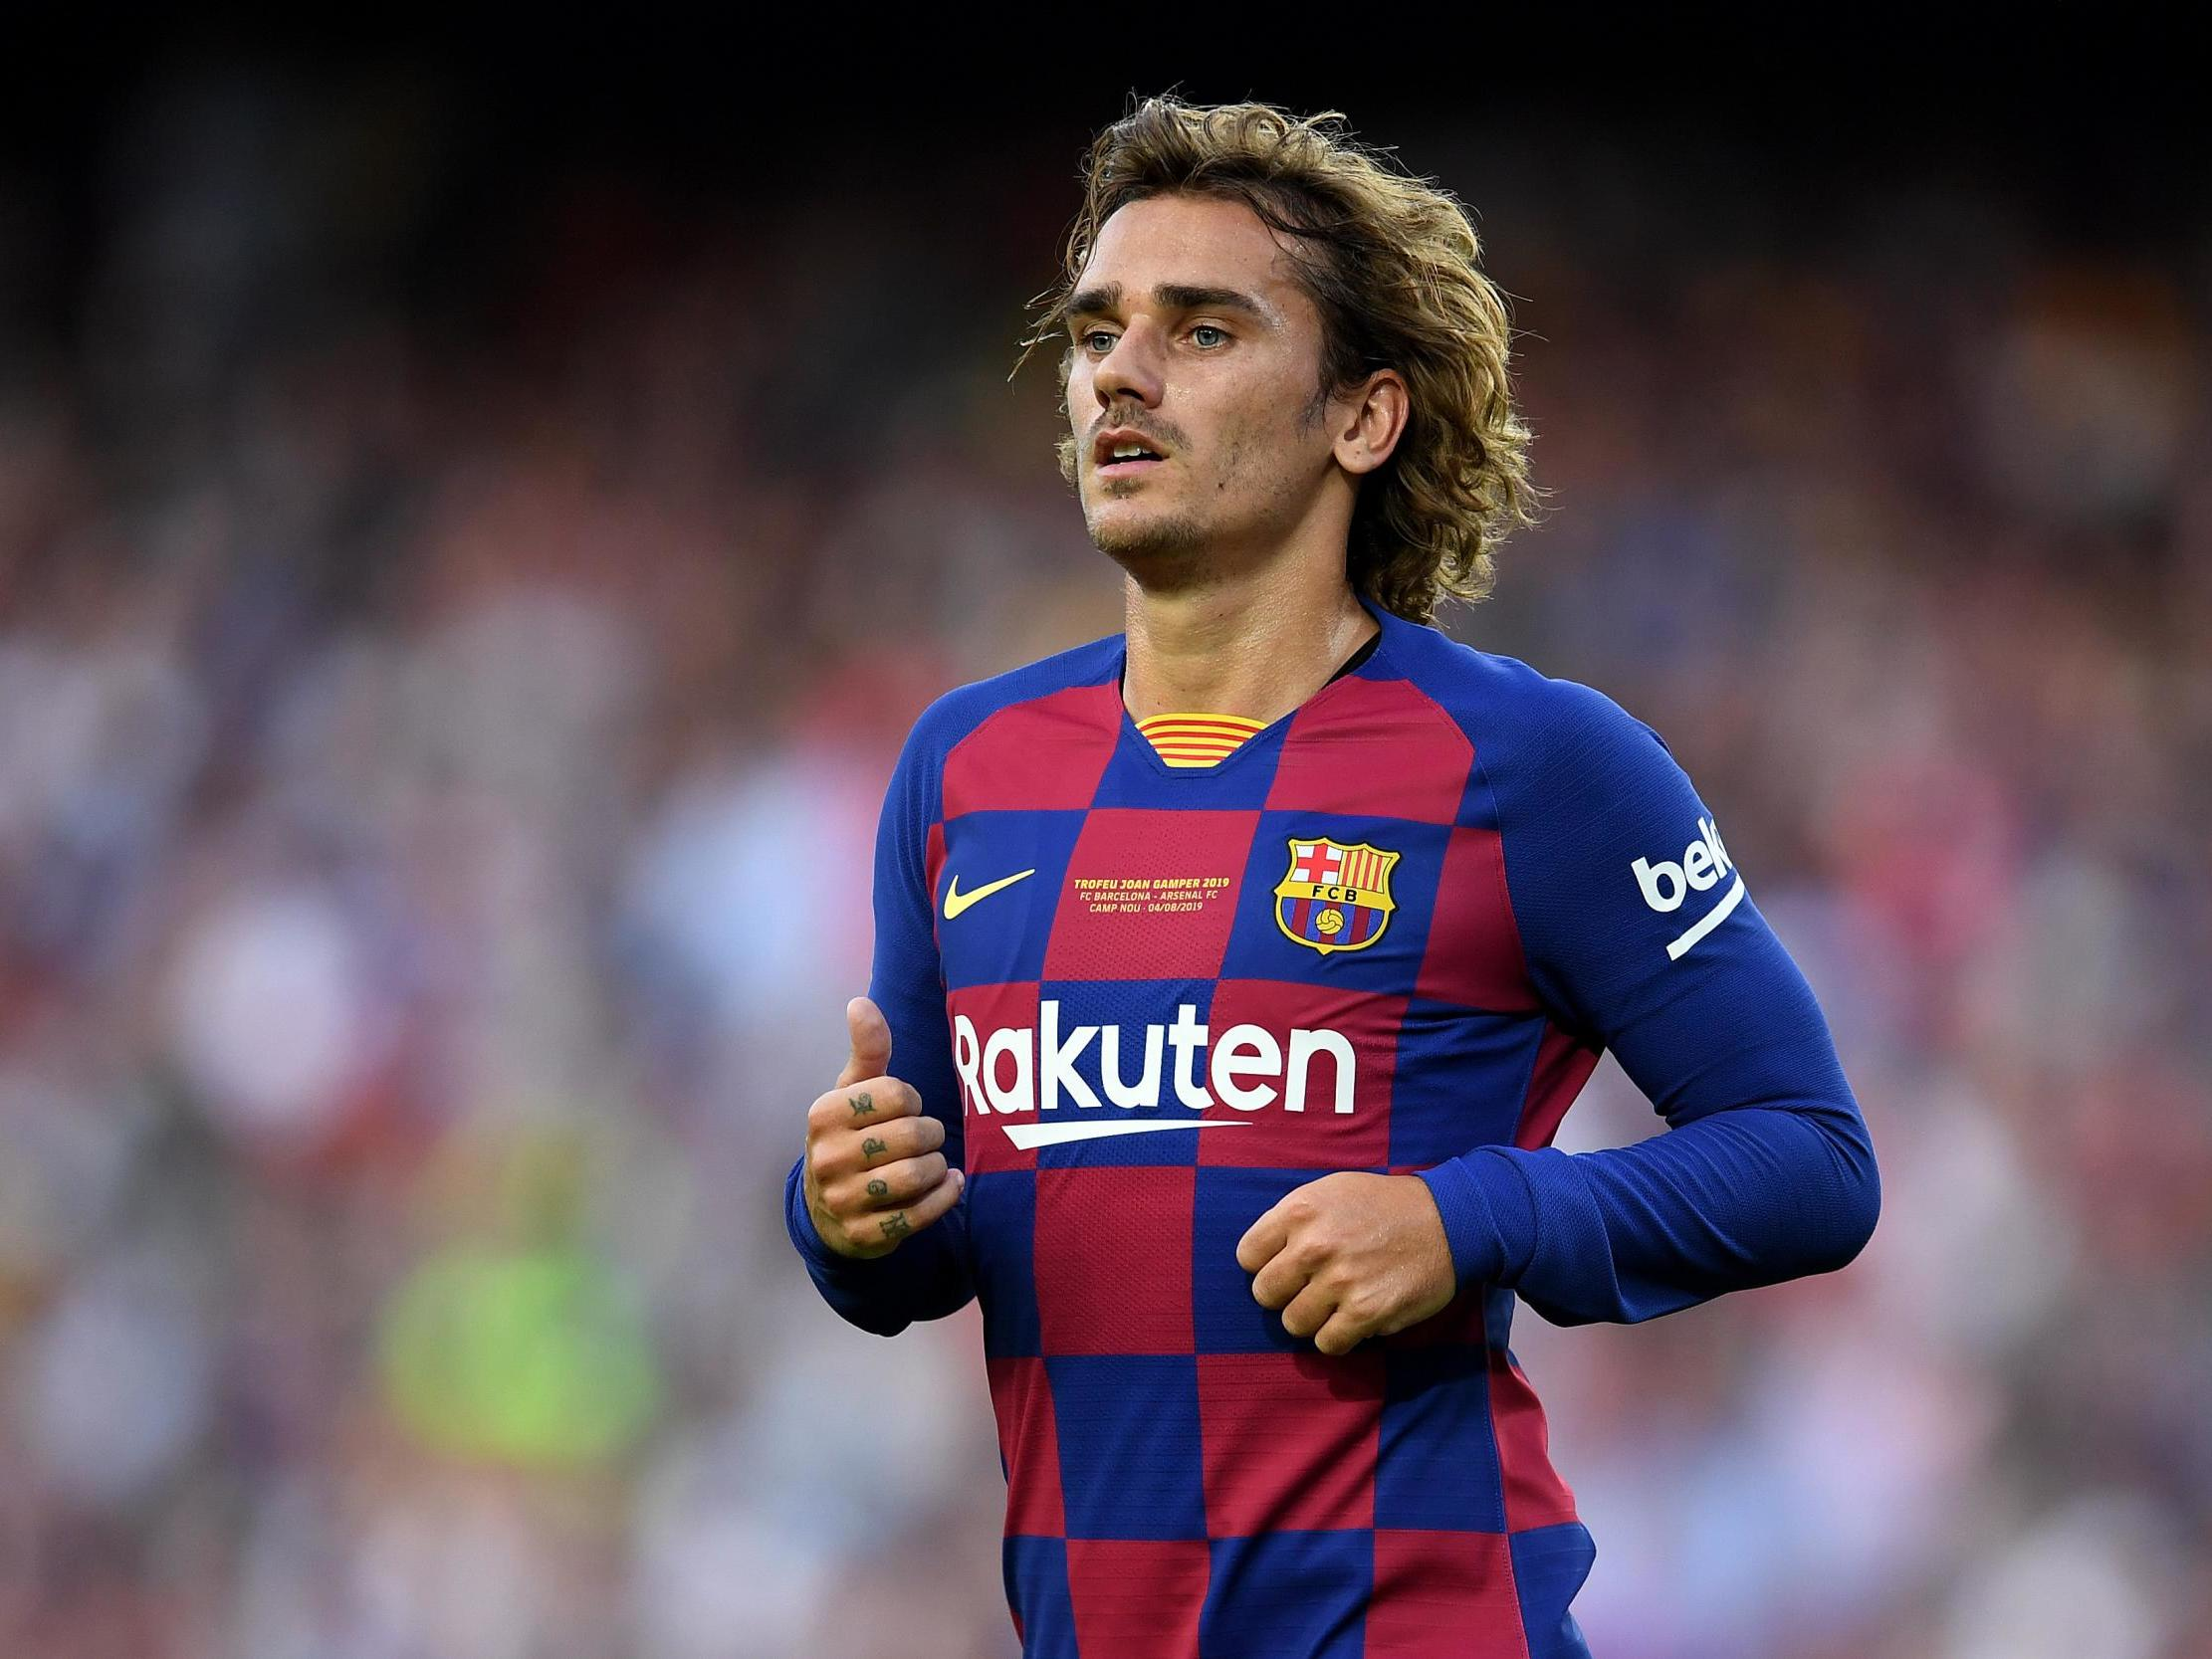 Antoine Griezmann Fuels Barcelona S Pursuit Of Domestic And European Glory The Independent